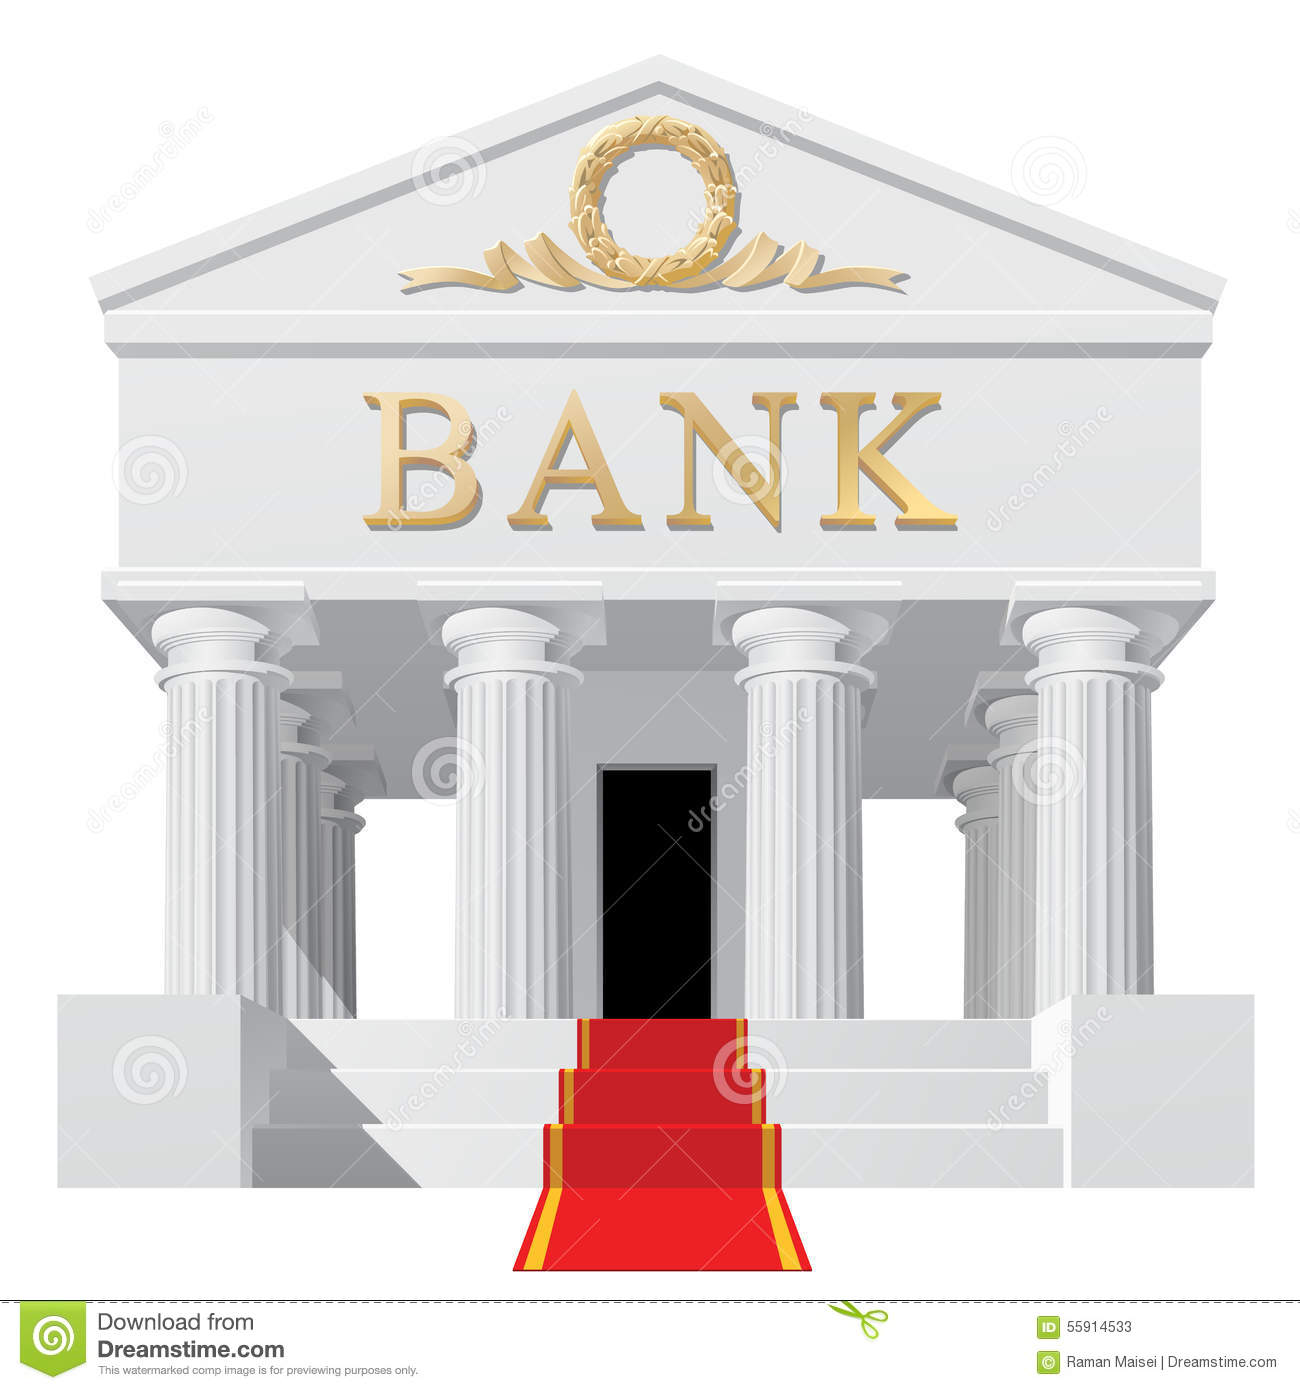 Bank Clipart No Watermark.